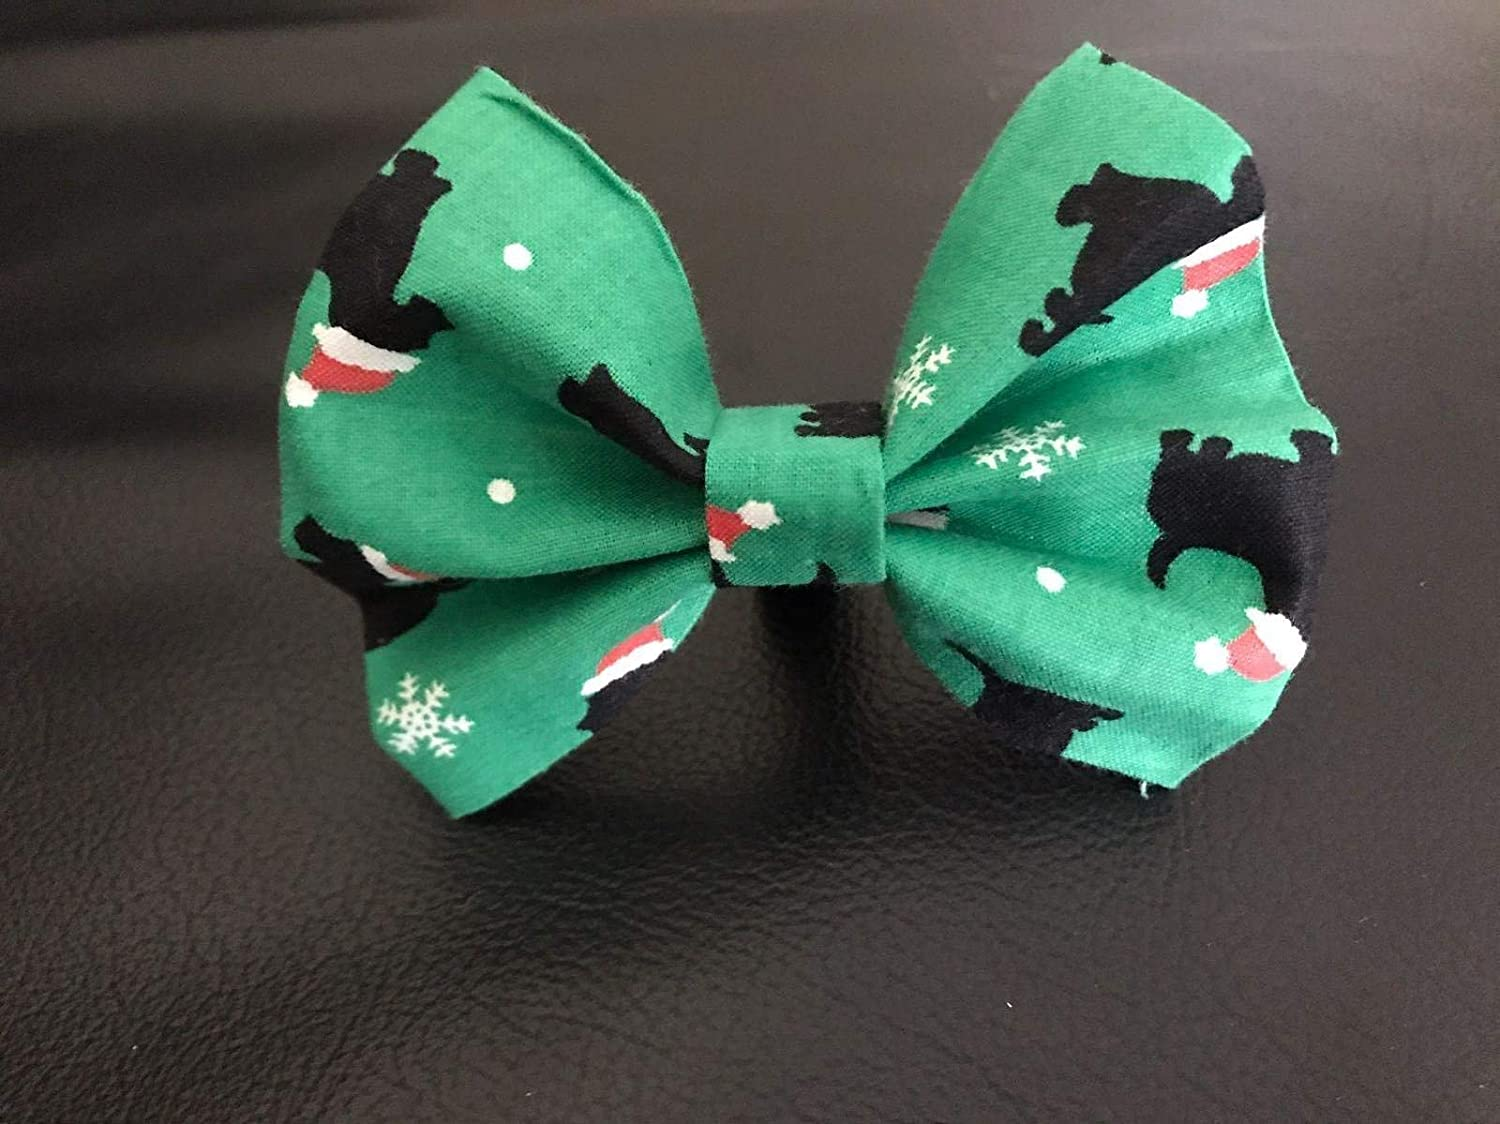 Dog Bow Tie in Green Christmas Dogs in Santa Hats and Snowflakes for Holiday Winter Pet Fashion - Small 4 Only